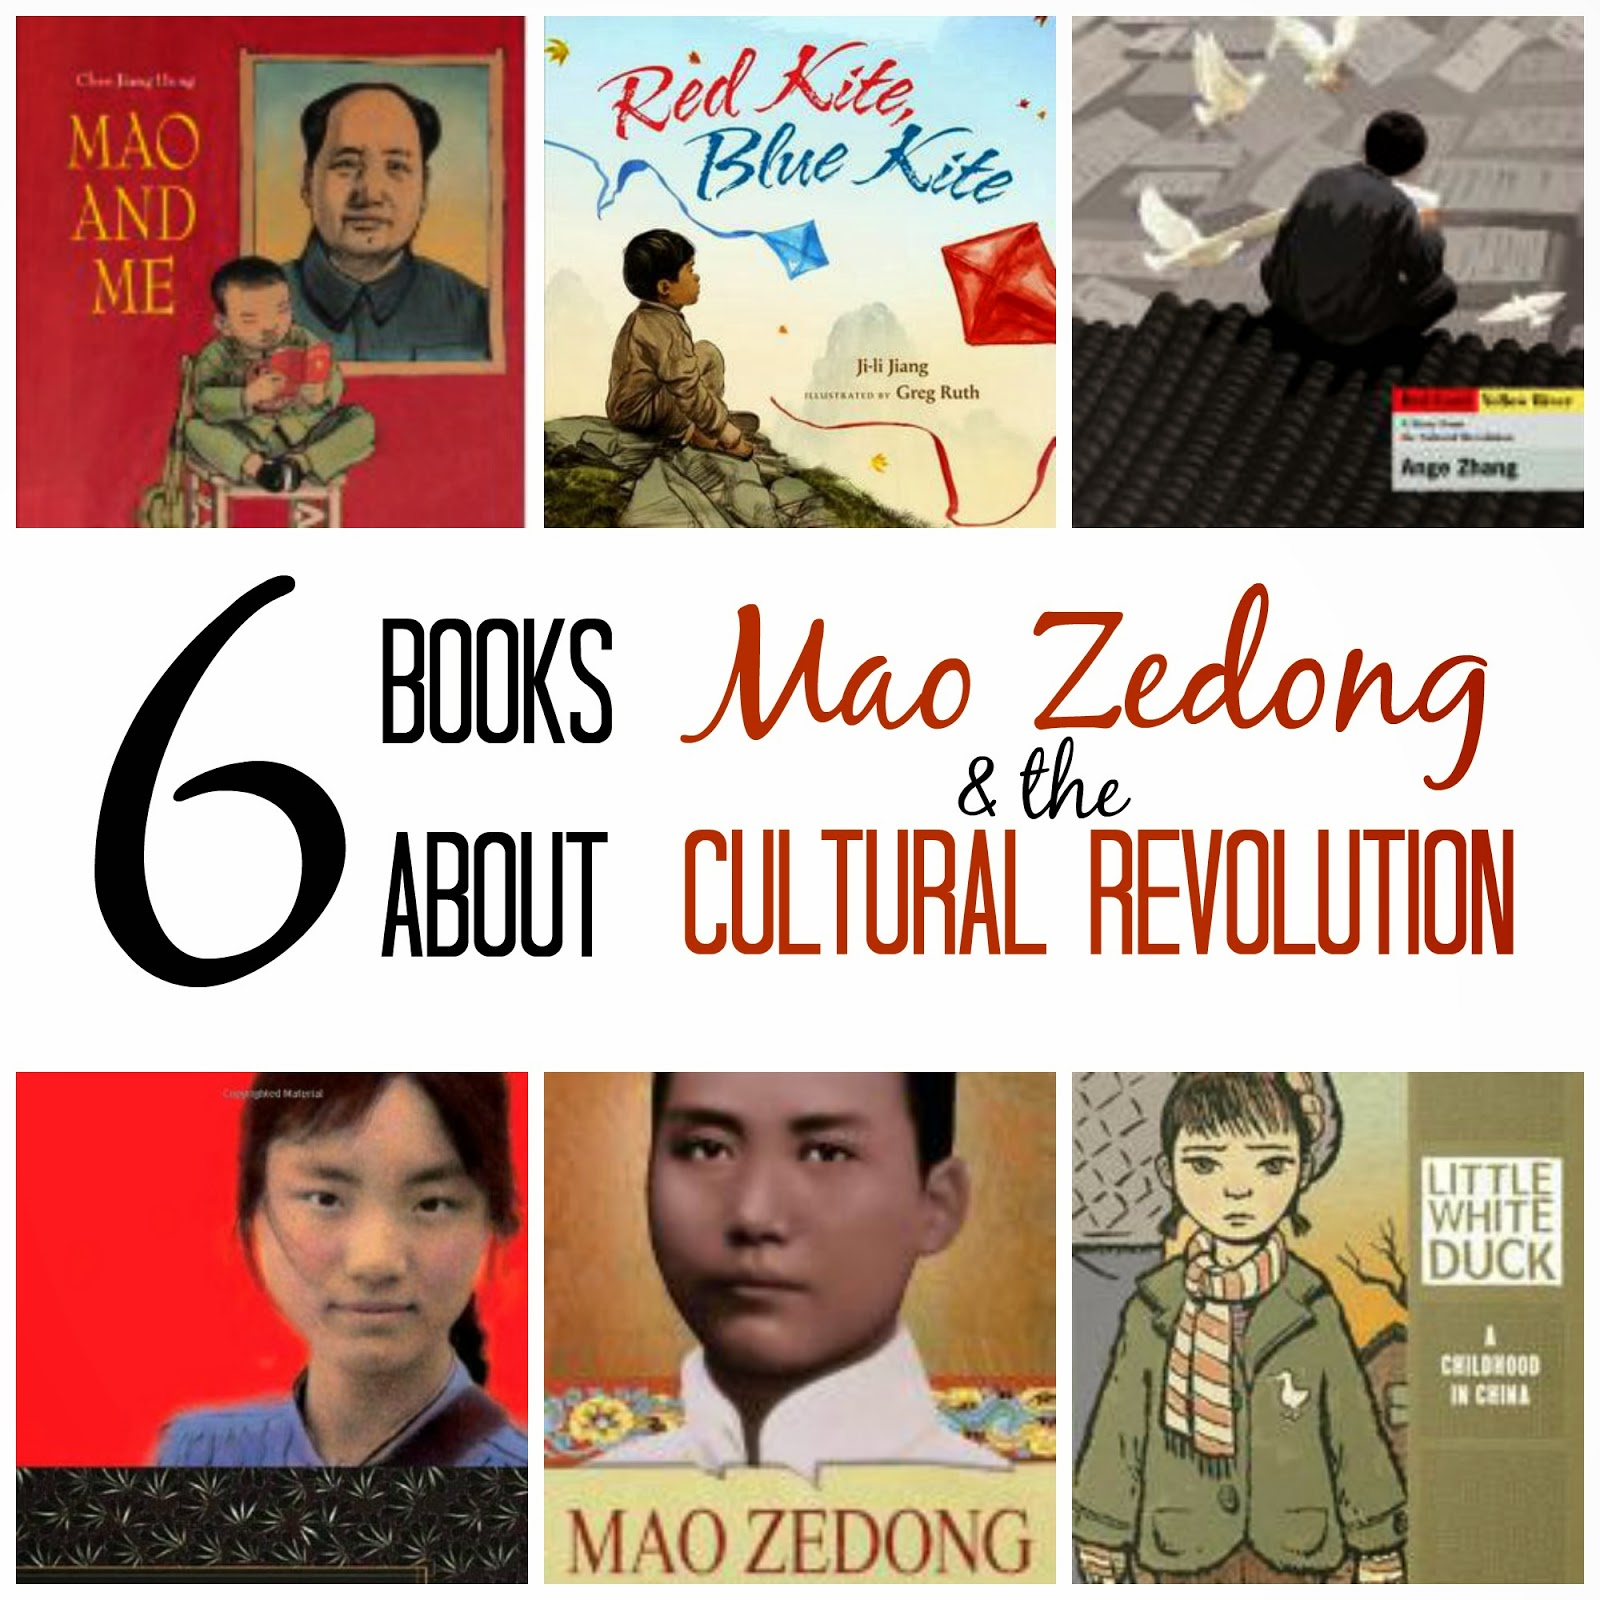 mao zedong and the cultural revolution The great proletarian cultural revolution was a decade-long period of political  and social chaos caused by mao zedong's bid to use the.